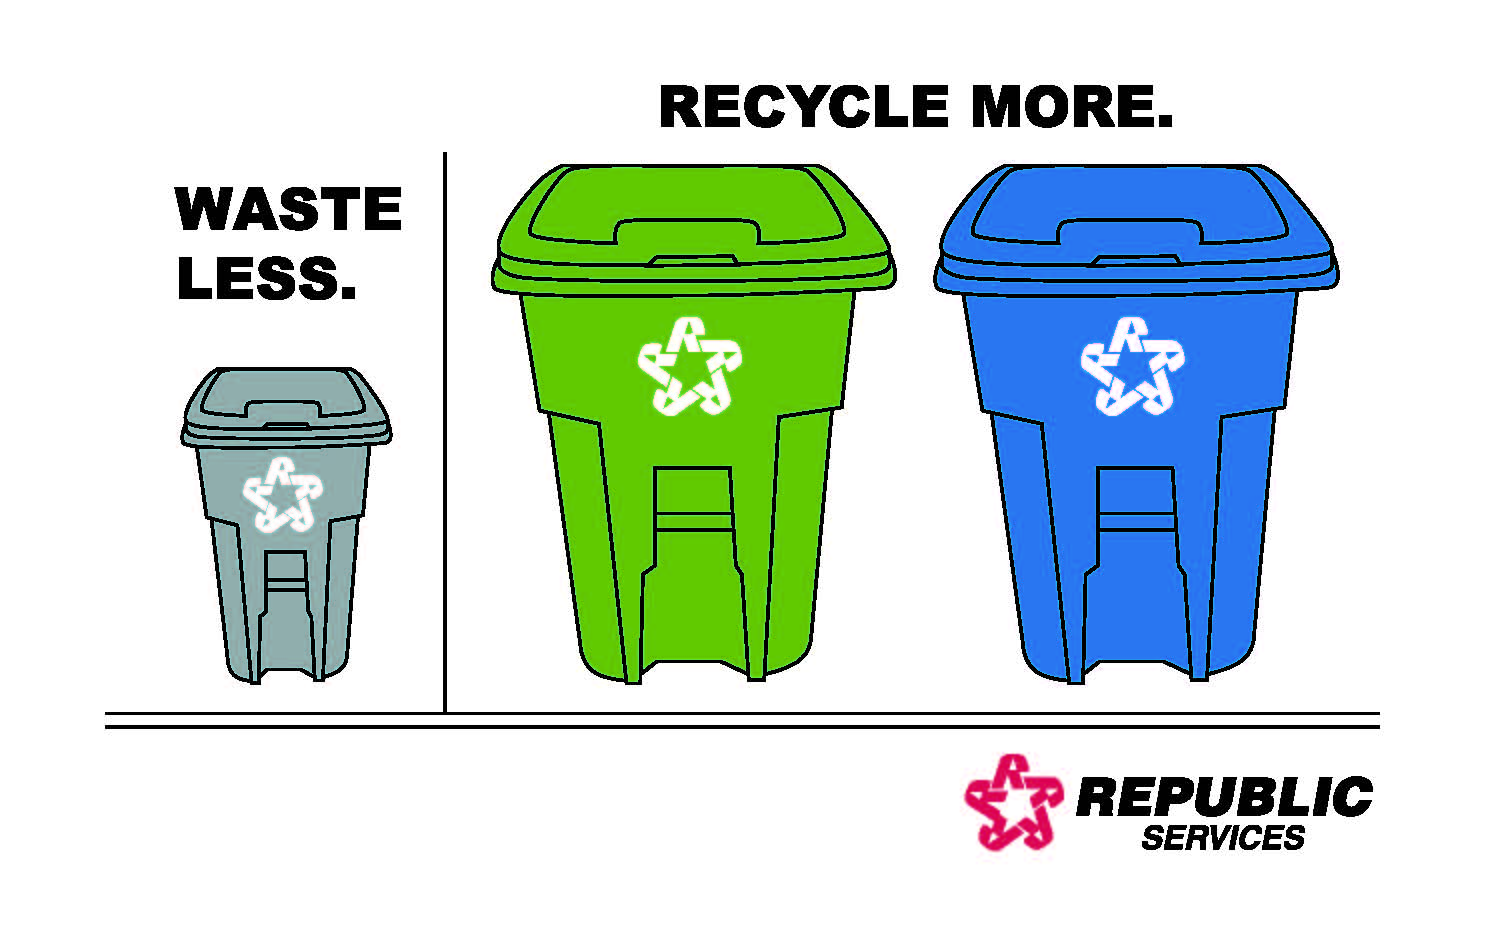 waste less, recycle more